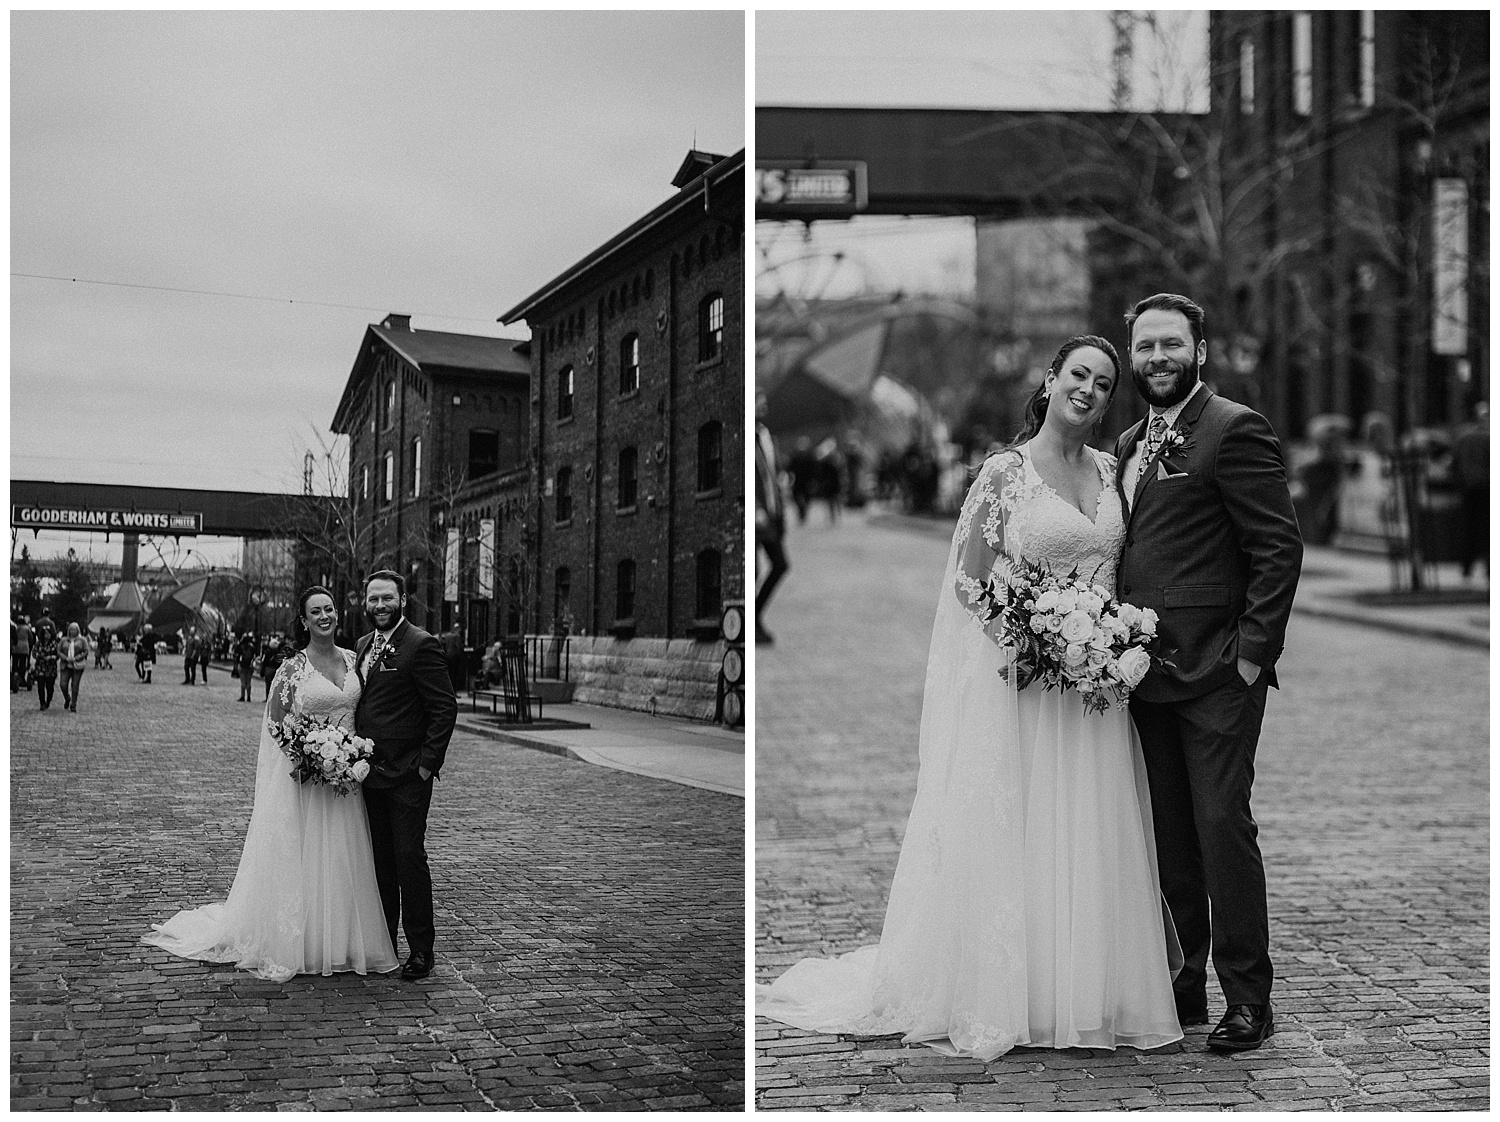 Katie Marie Photography | Archeo Wedding Arta Gallery Wedding | Distillery District Wedding | Toronto Wedding Photographer | Hamilton Toronto Ontario Wedding Photographer |_0052.jpg